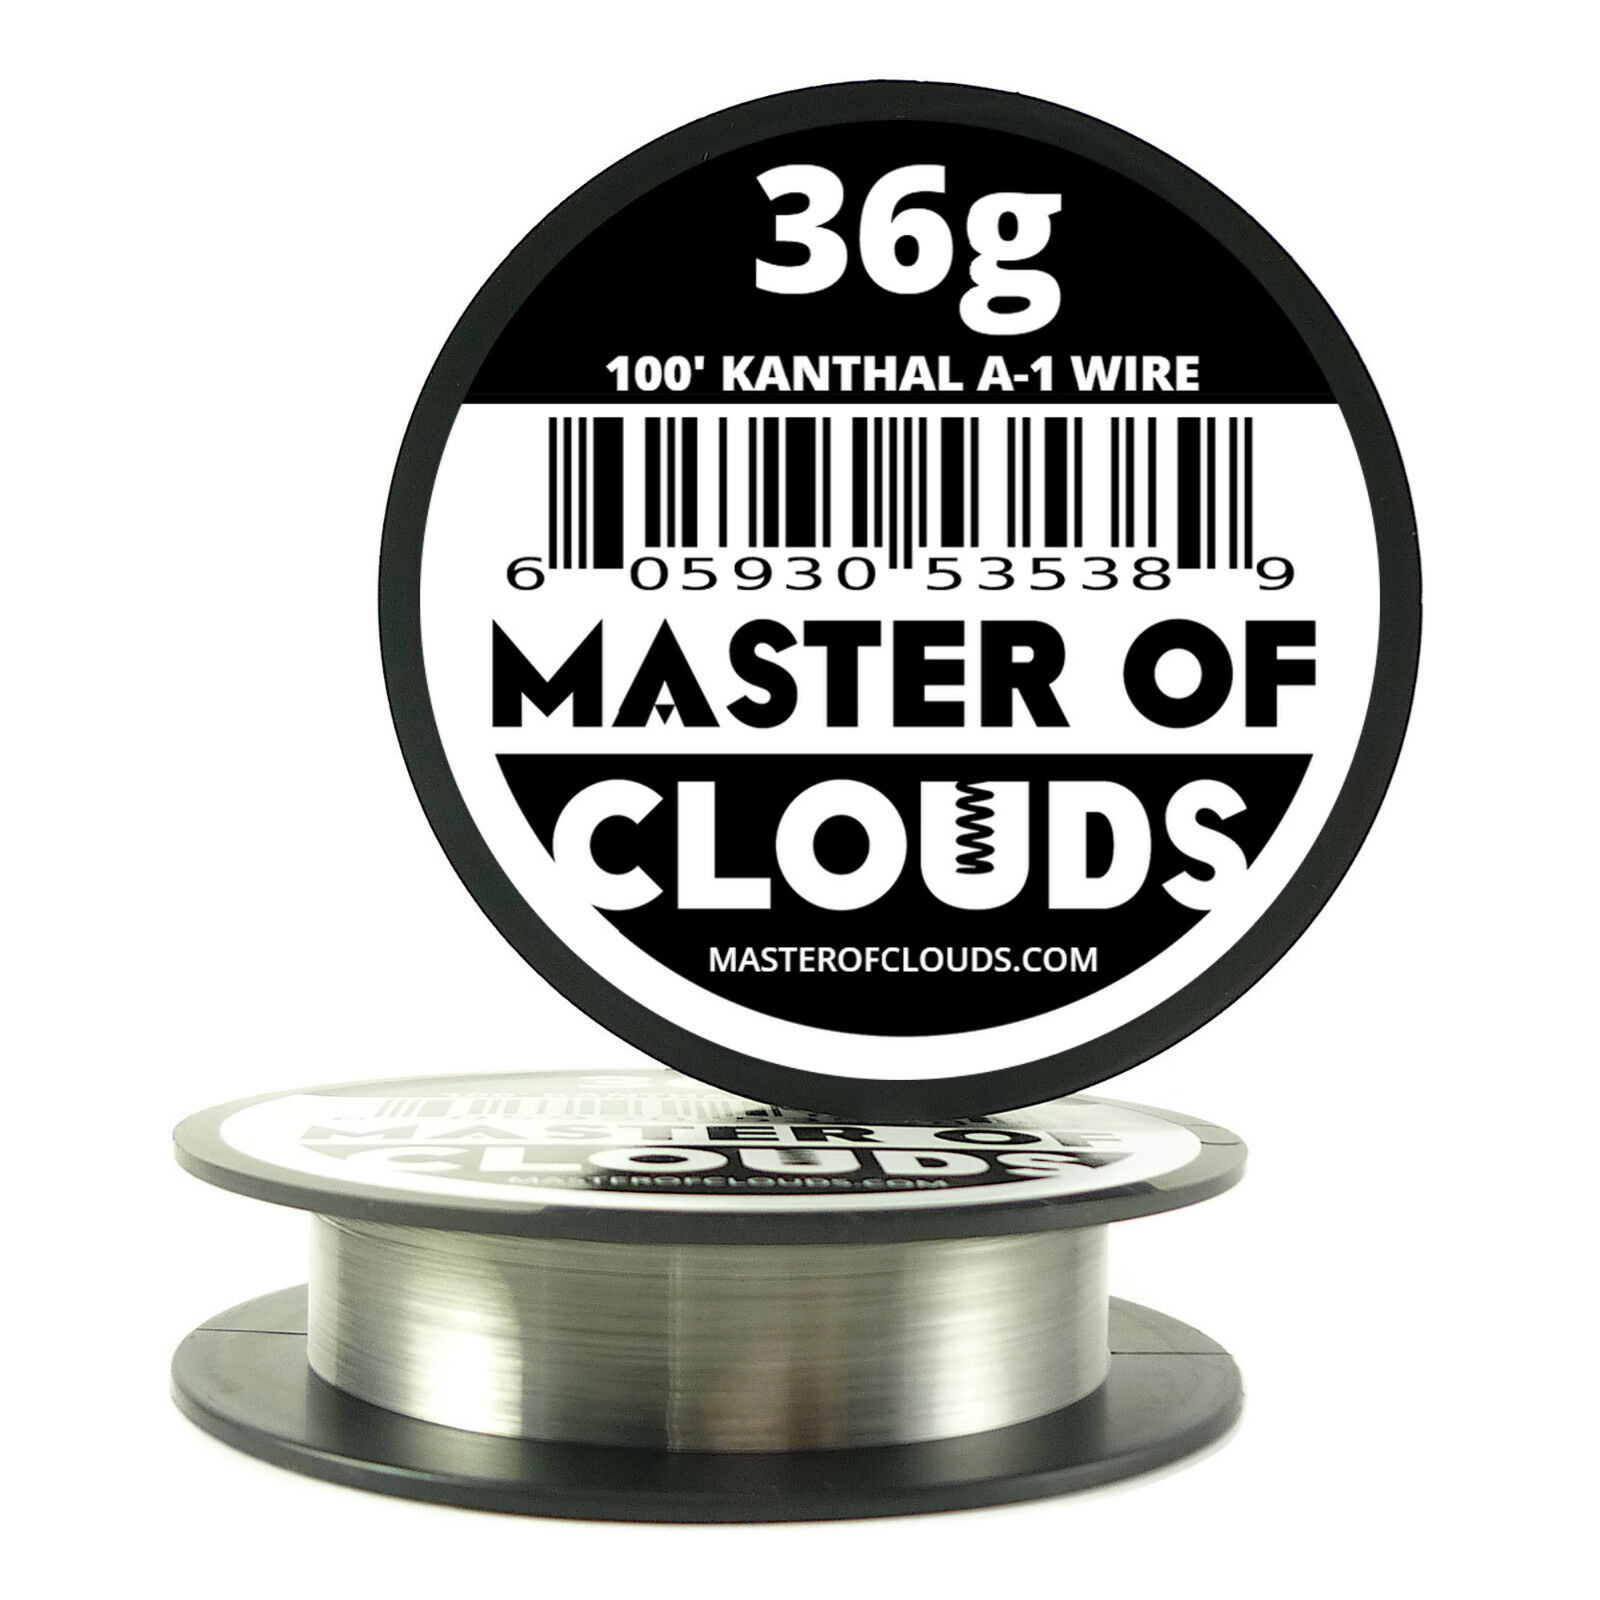 100 ft - 36 Gauge AWG A1 Kanthal Round Wire 0.127 mm Resistance A-1 ...